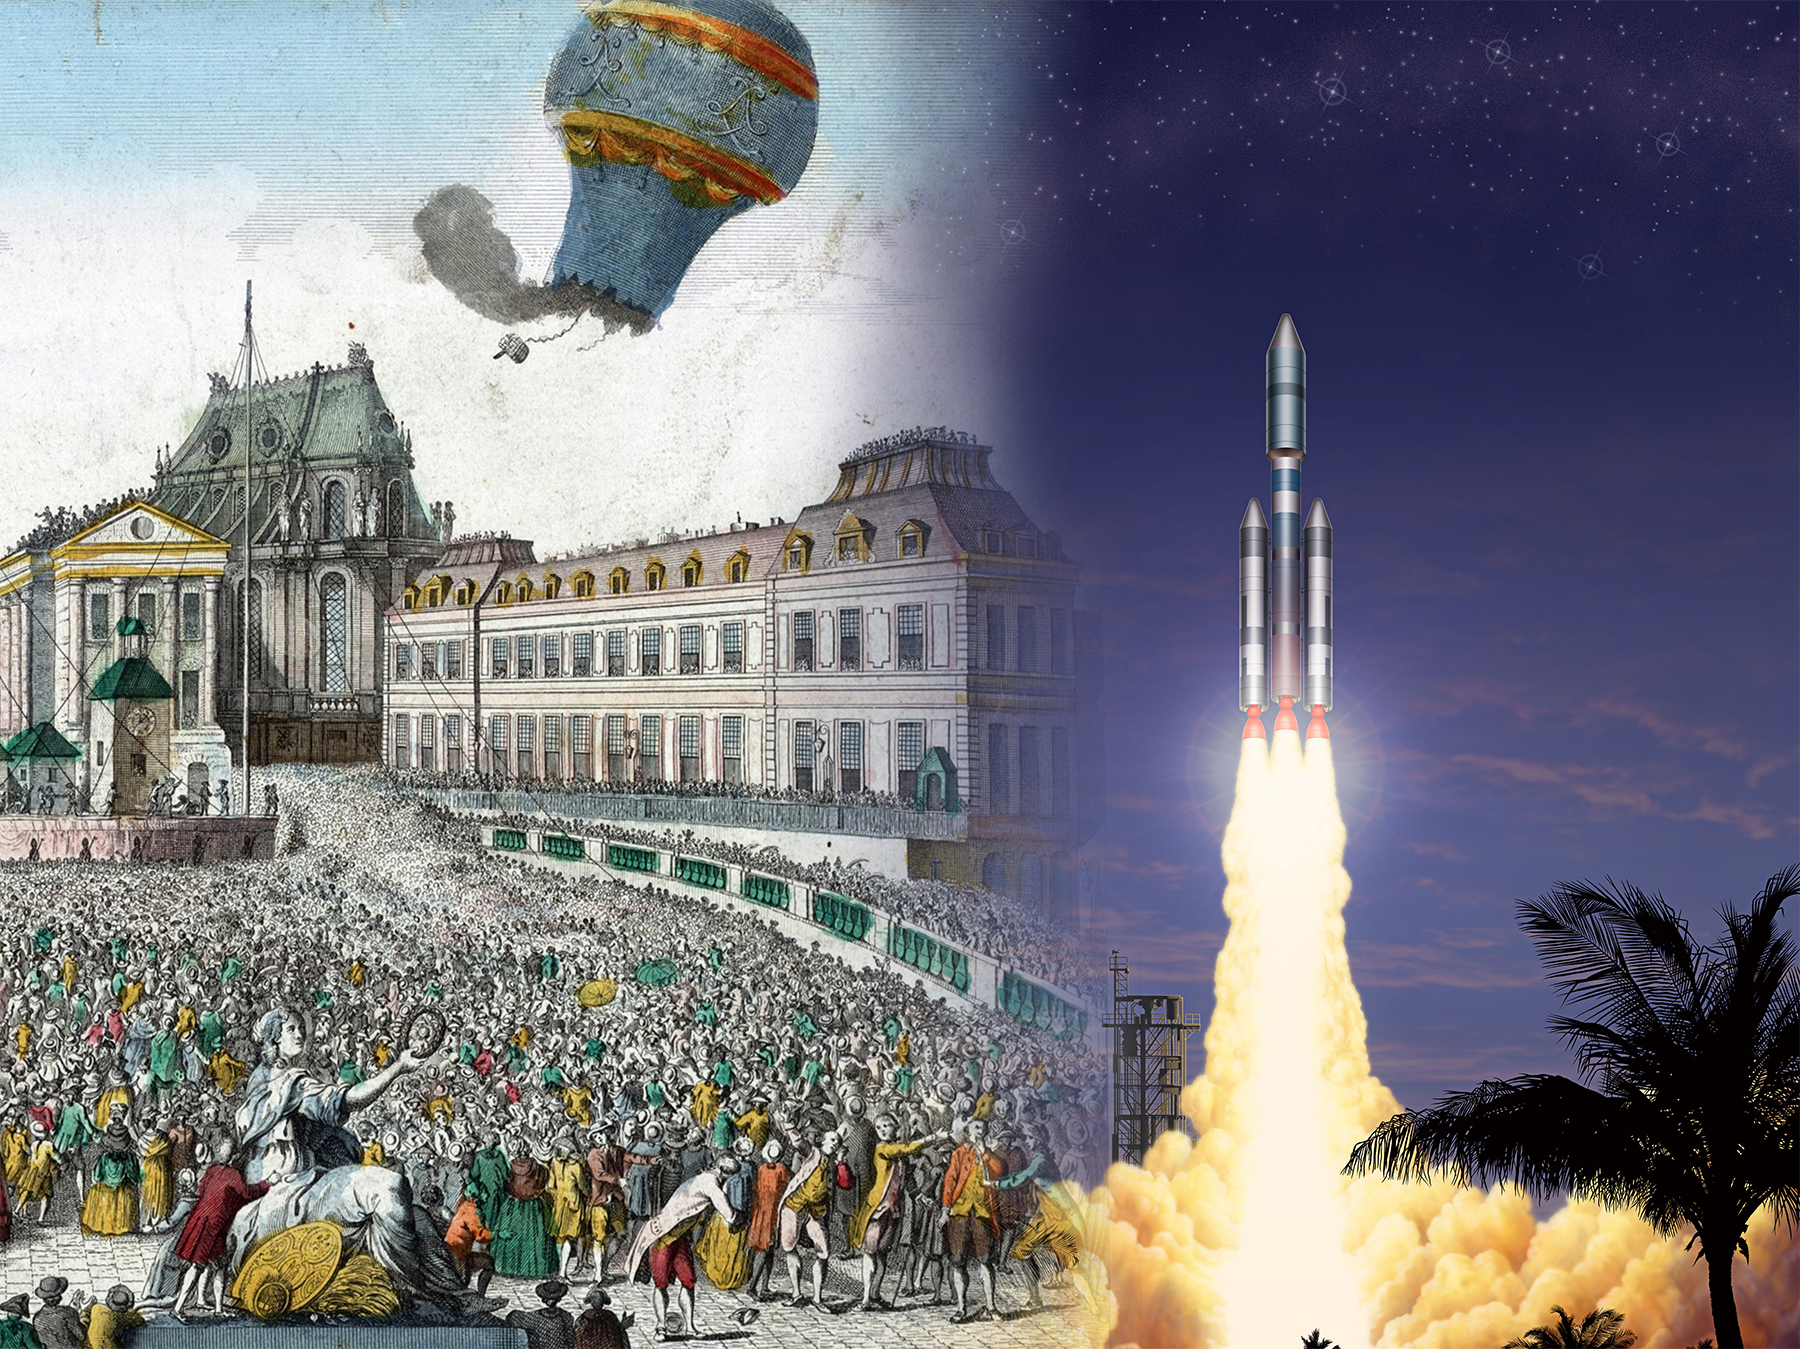 From Versailles to the Stars